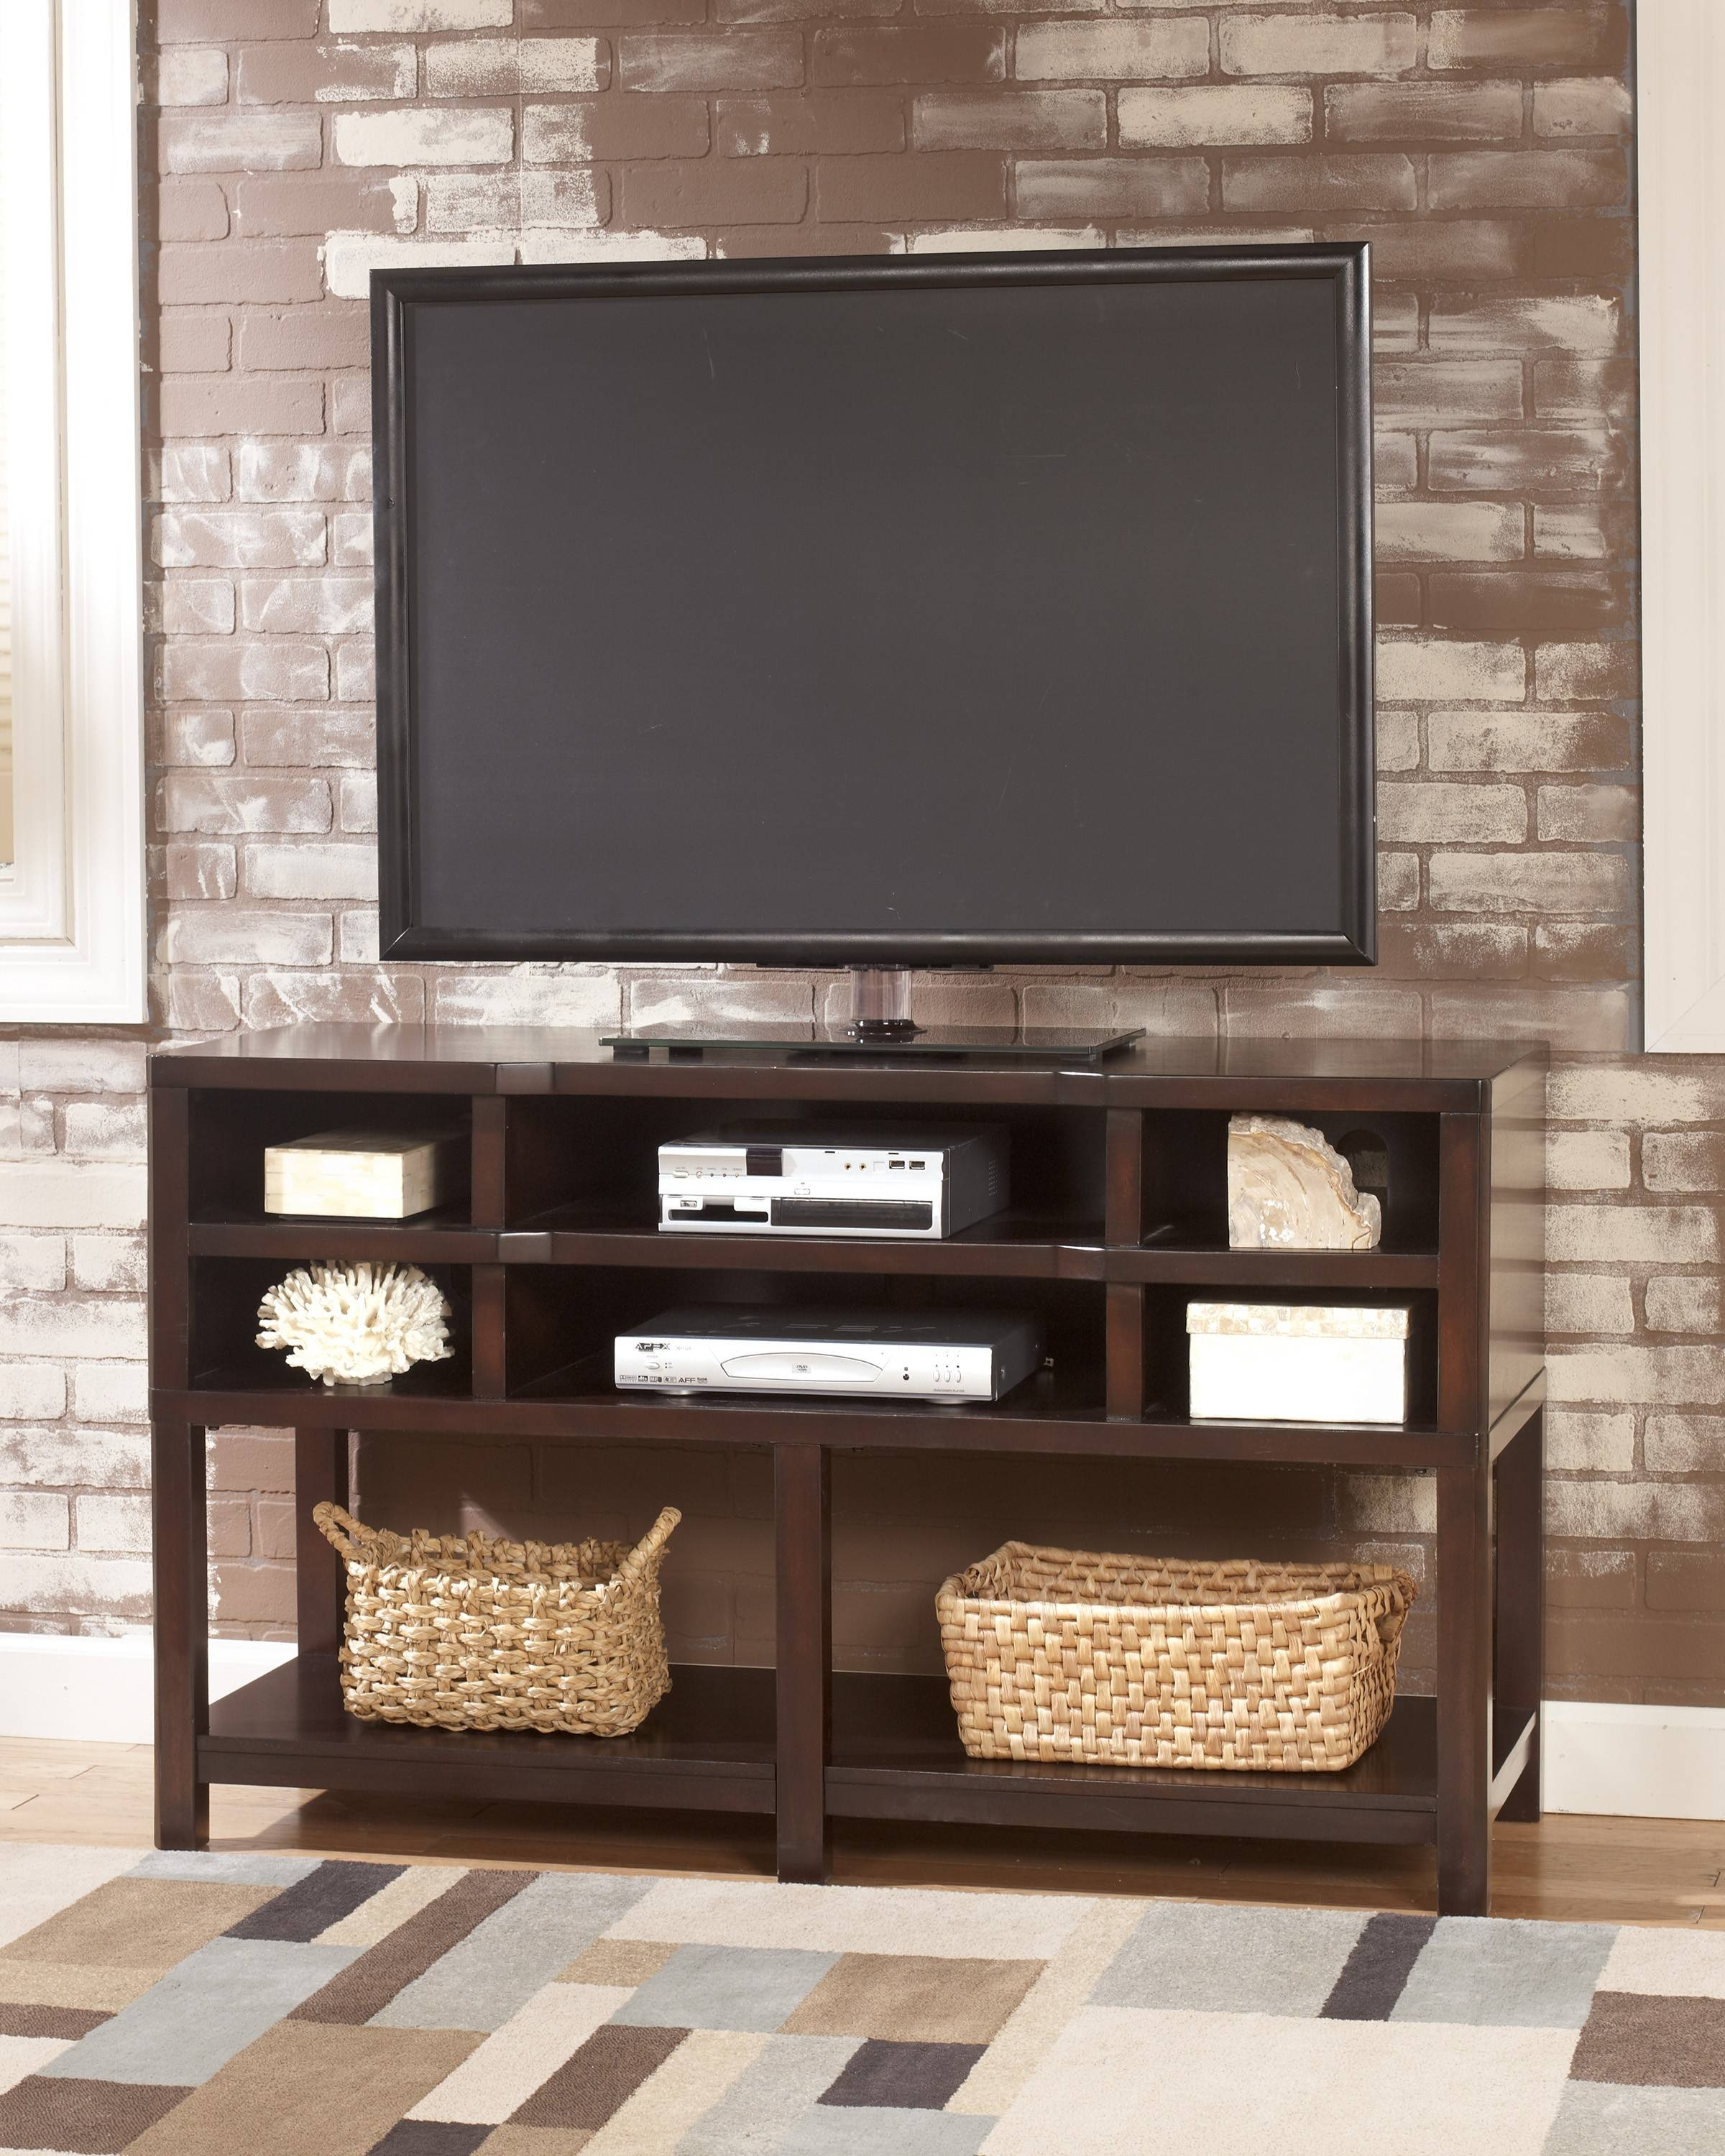 Simple Modern Oak Flat Screen Tv Stand Console Table With Throughout Tv Stands With Storage Baskets (View 2 of 15)